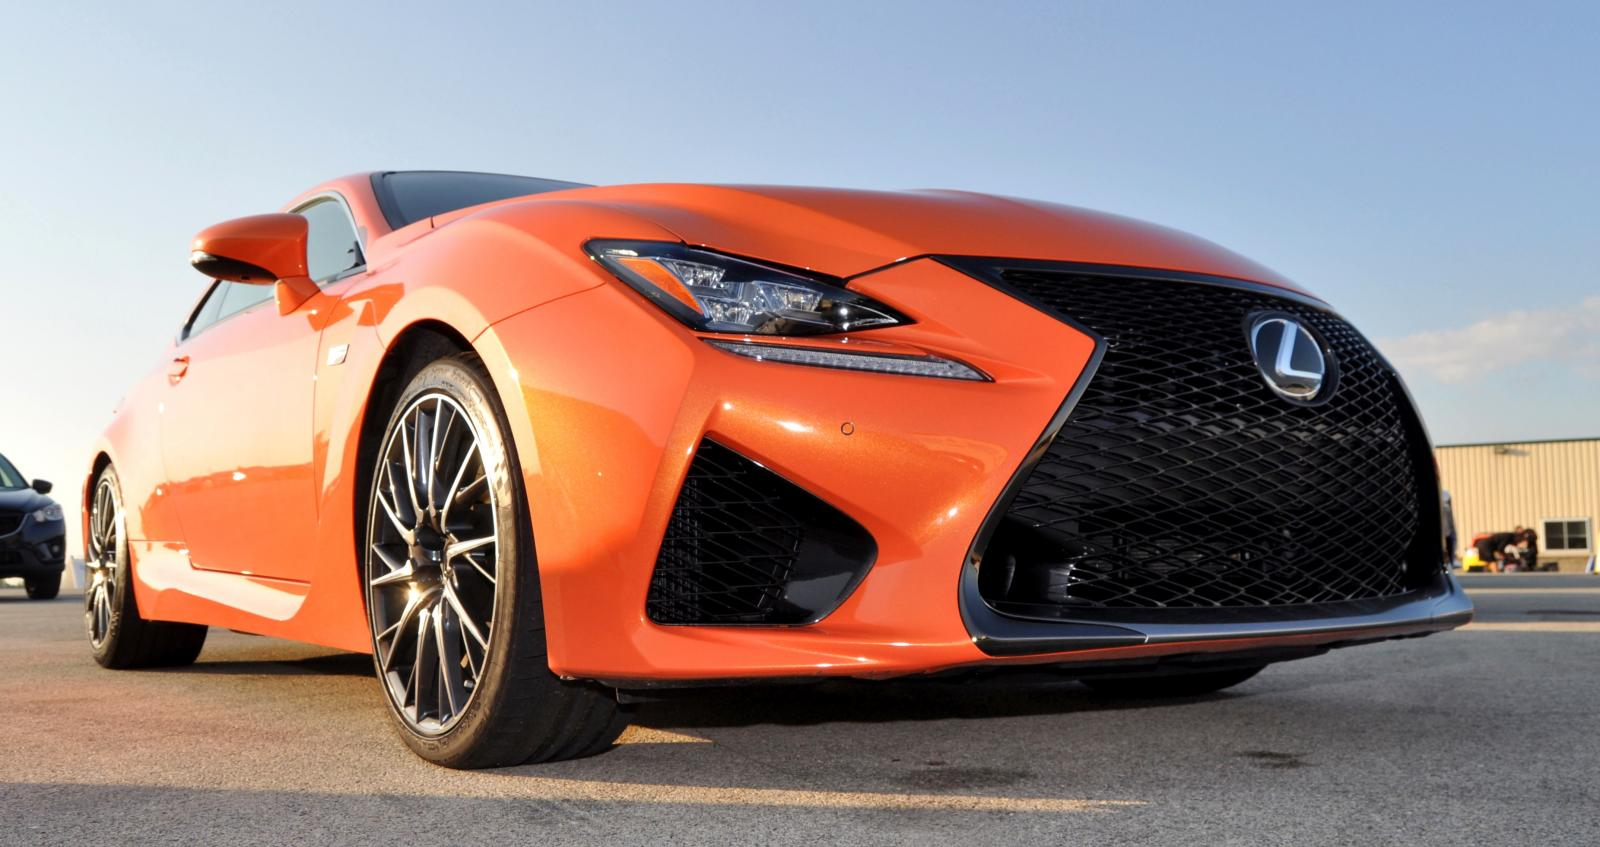 track drive review 2015 lexus rcf is roaring delight around autobahn country club 37 car. Black Bedroom Furniture Sets. Home Design Ideas